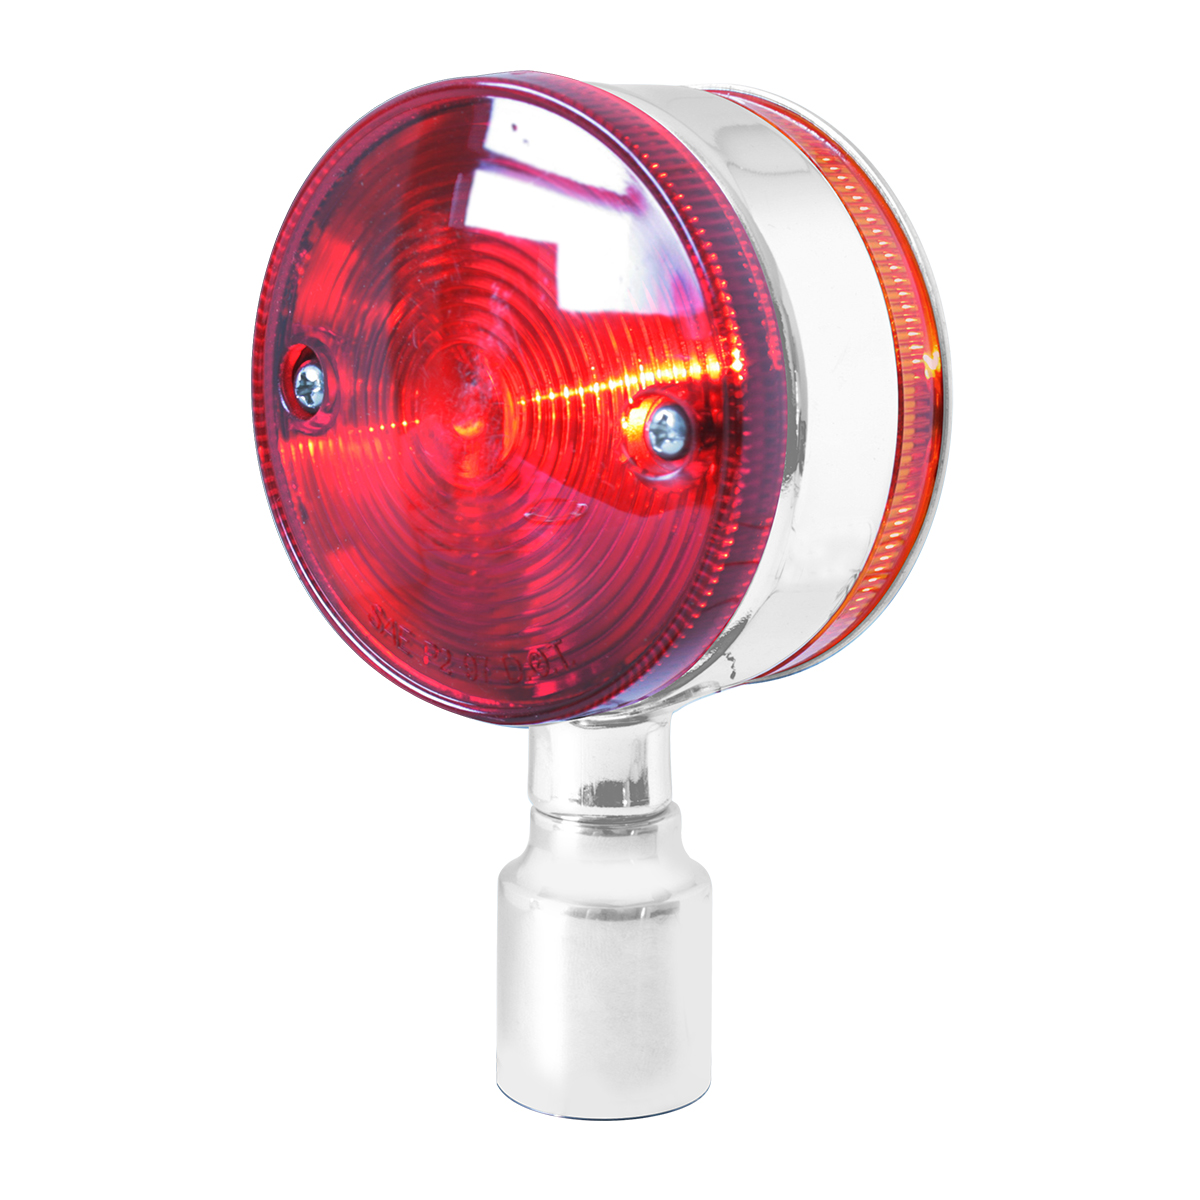 #94680 Chrome Plated Double Face Marker Light w/o Stainless Steel Rim - Projected Style Lens